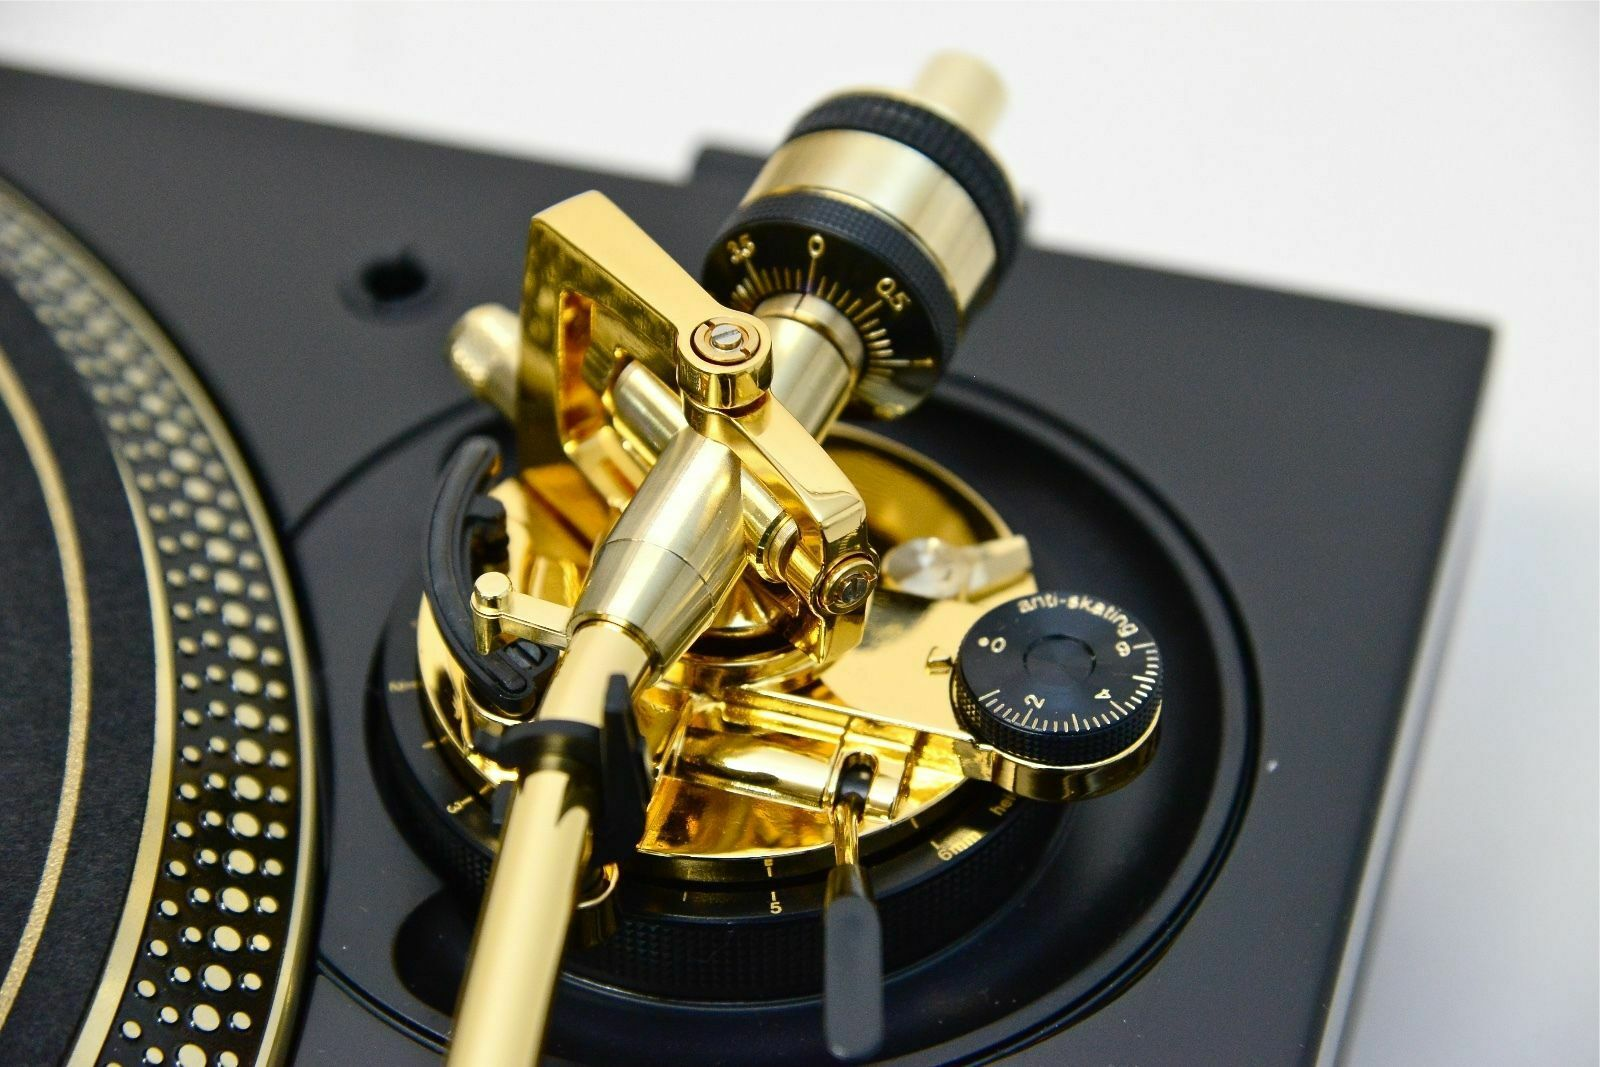 LIMITED EDITION GOLD TECHNICS SL-1200GLD